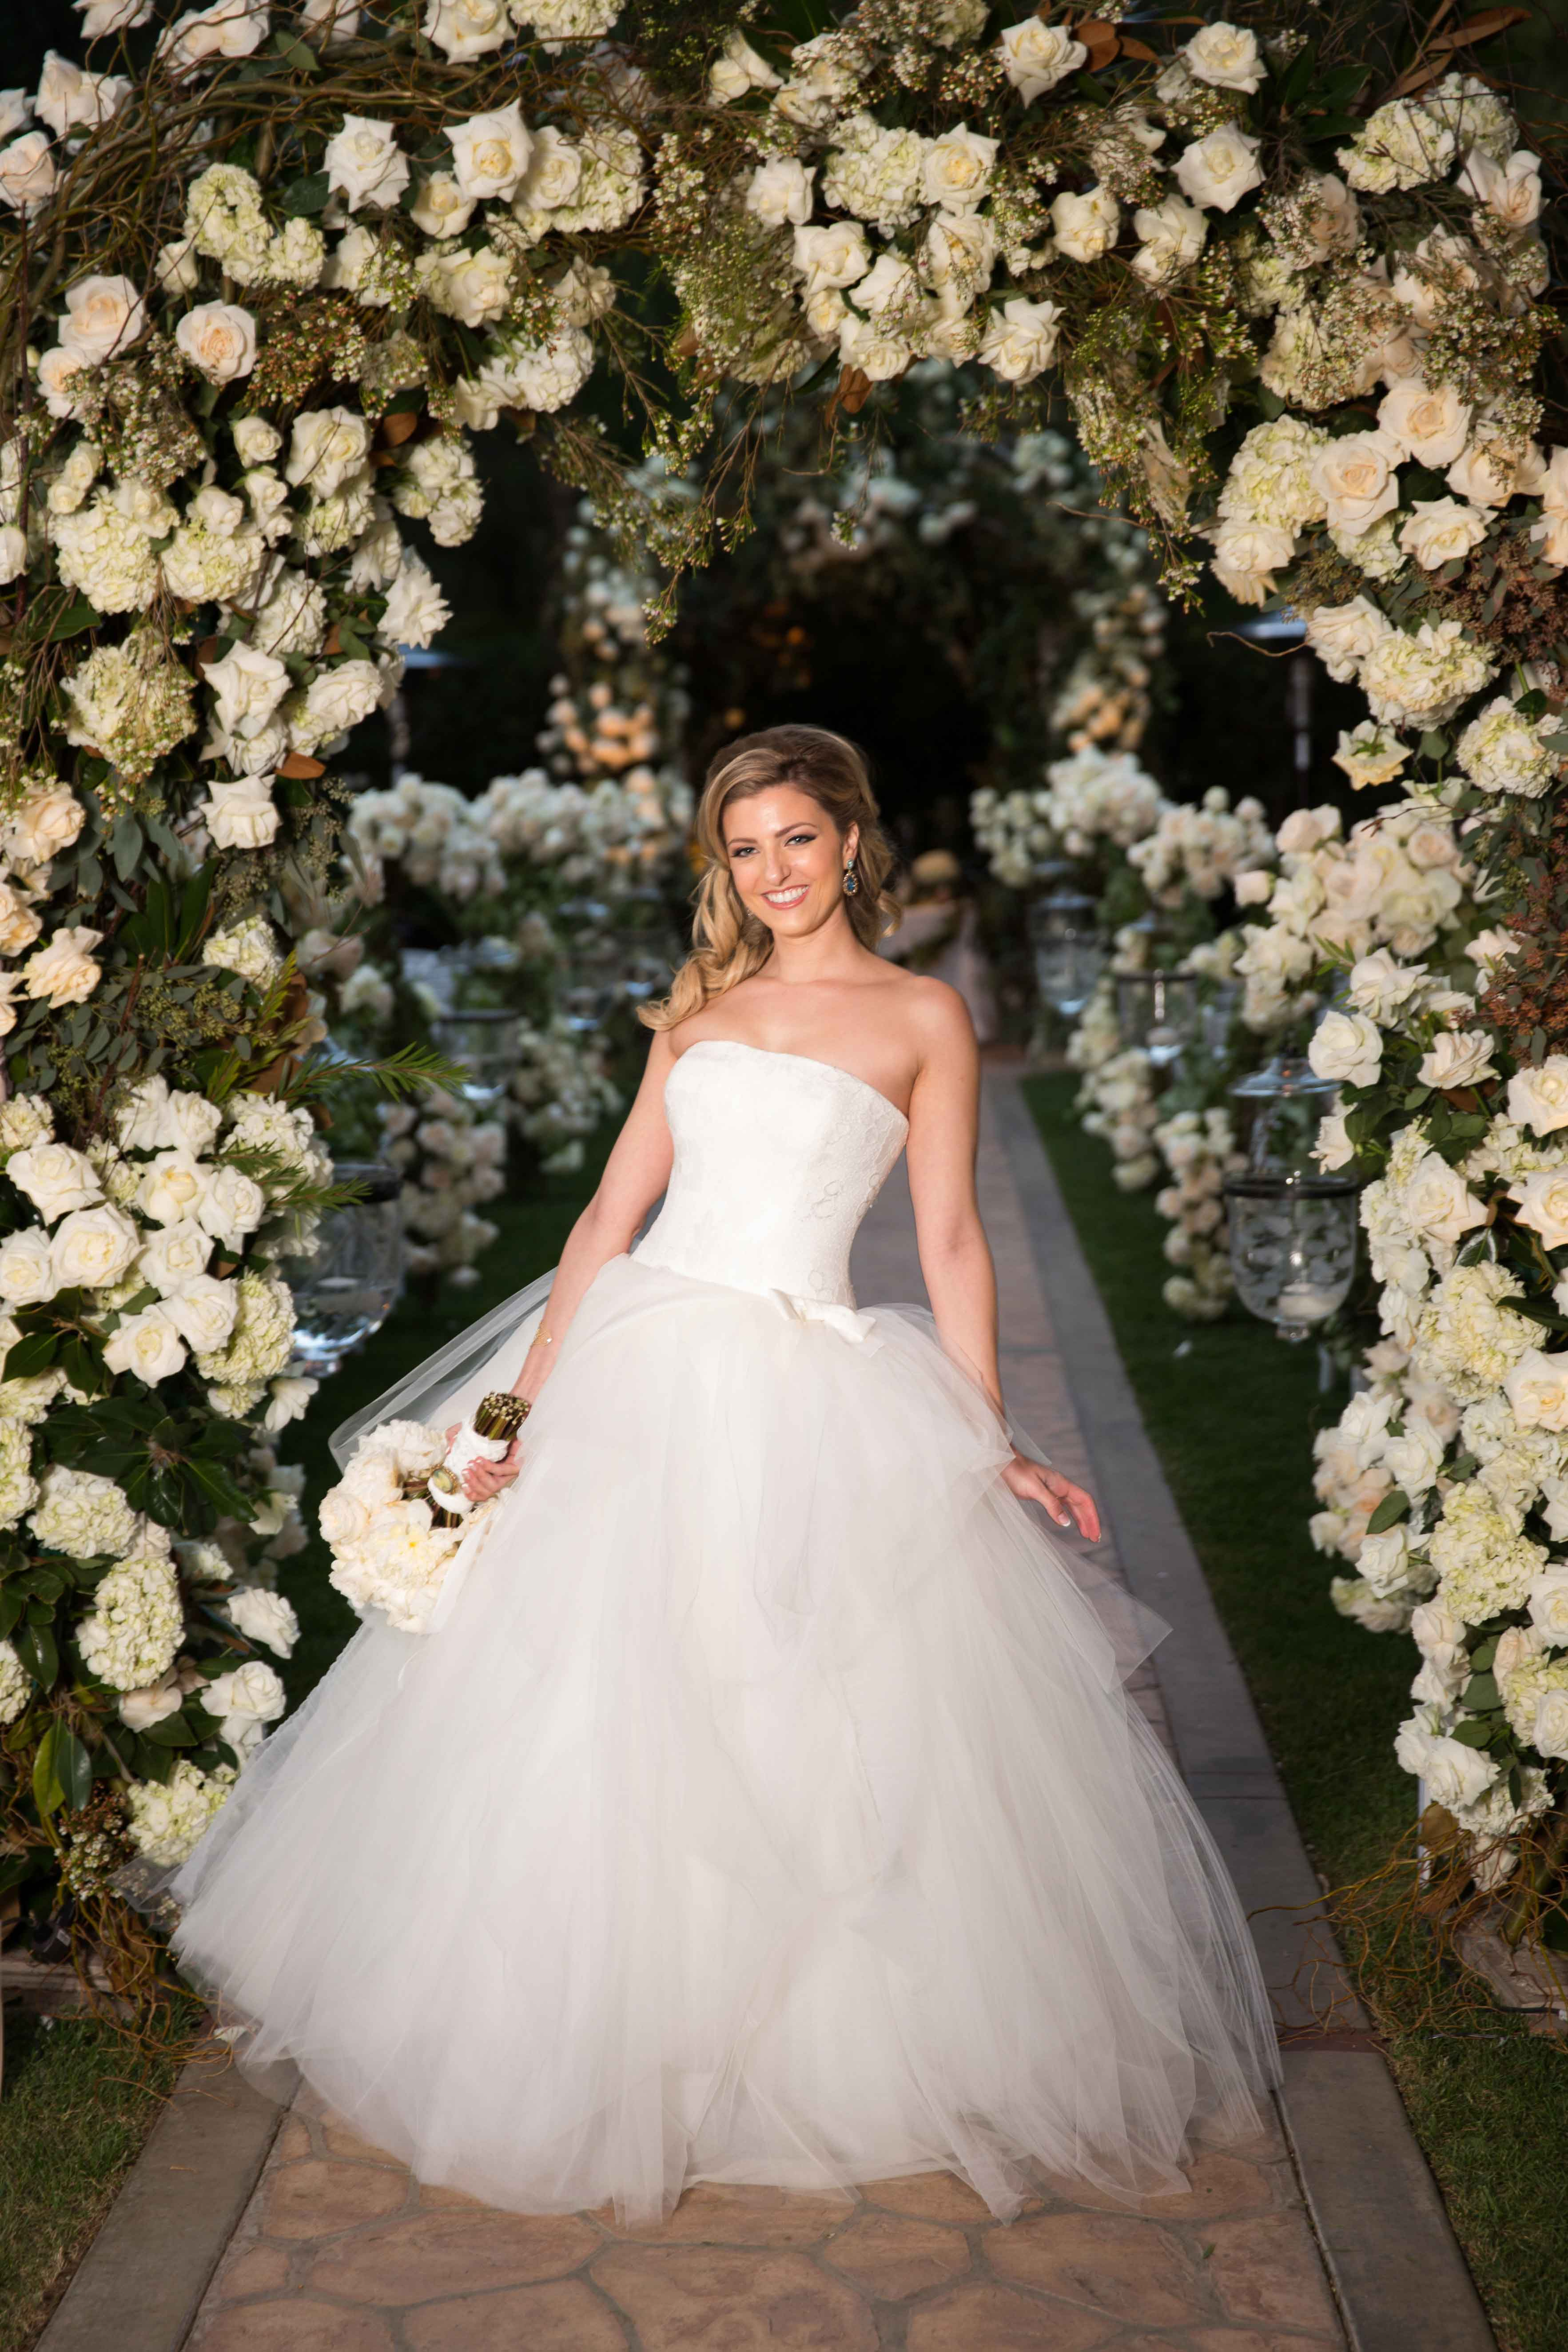 12 beautiful bridal ball gowns with full skirts inside for Beverly hills wedding dresses